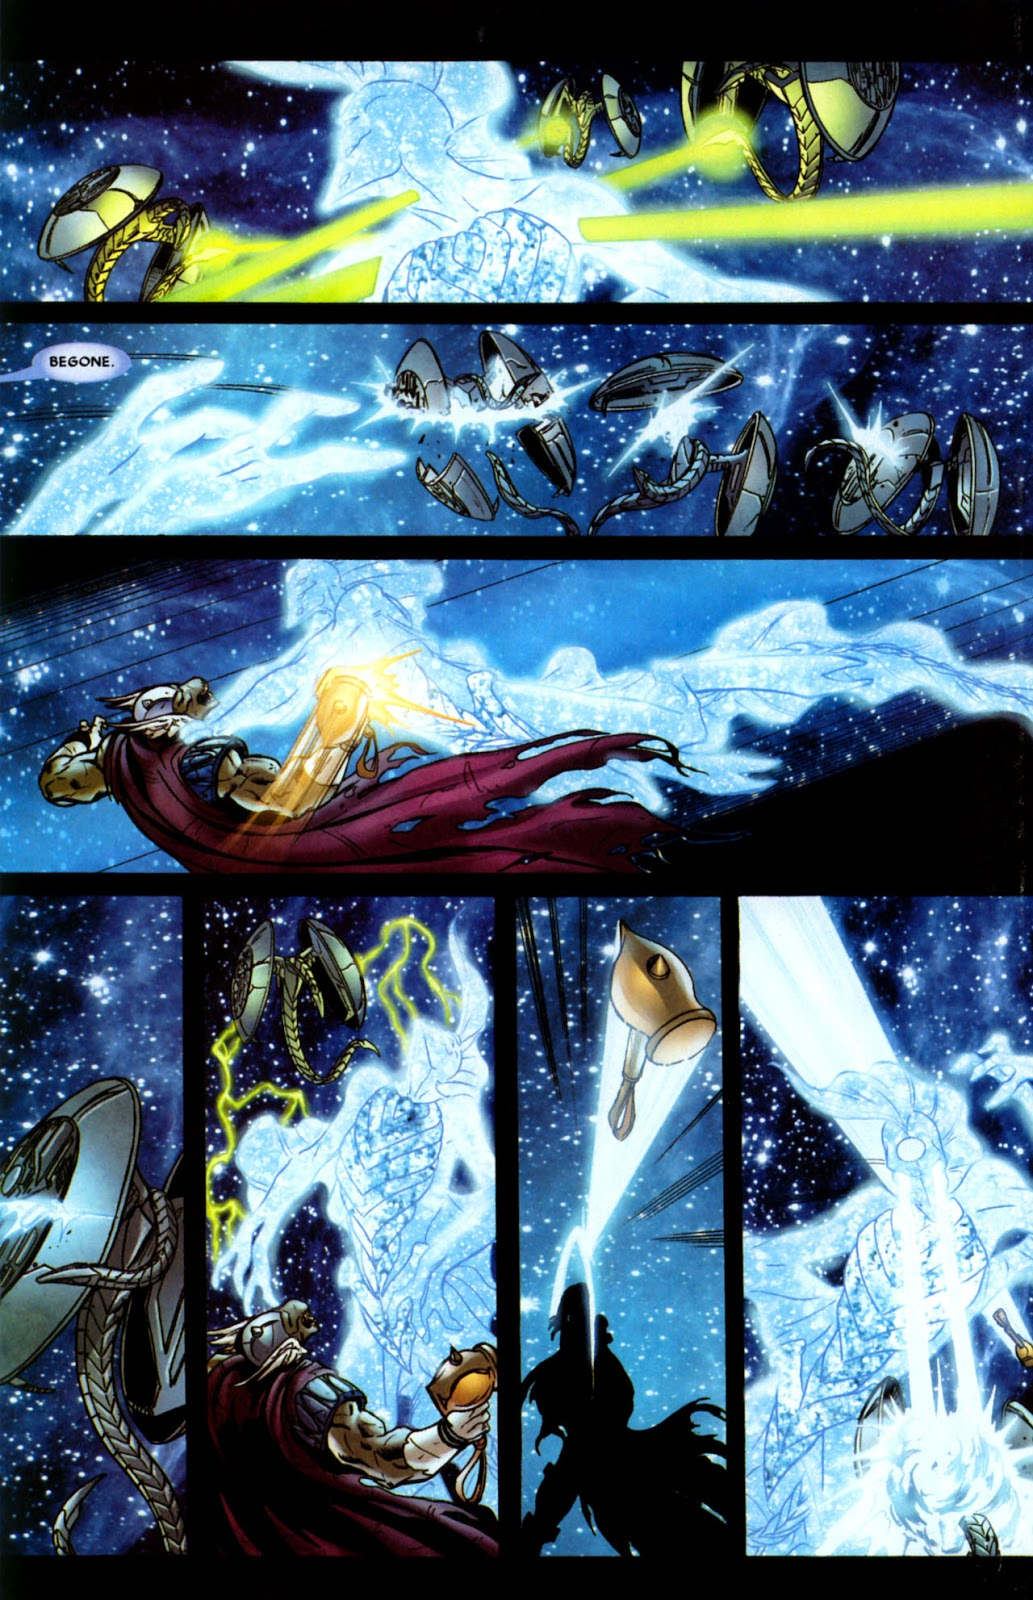 Stormbreaker The Saga of Beta Ray Bill review